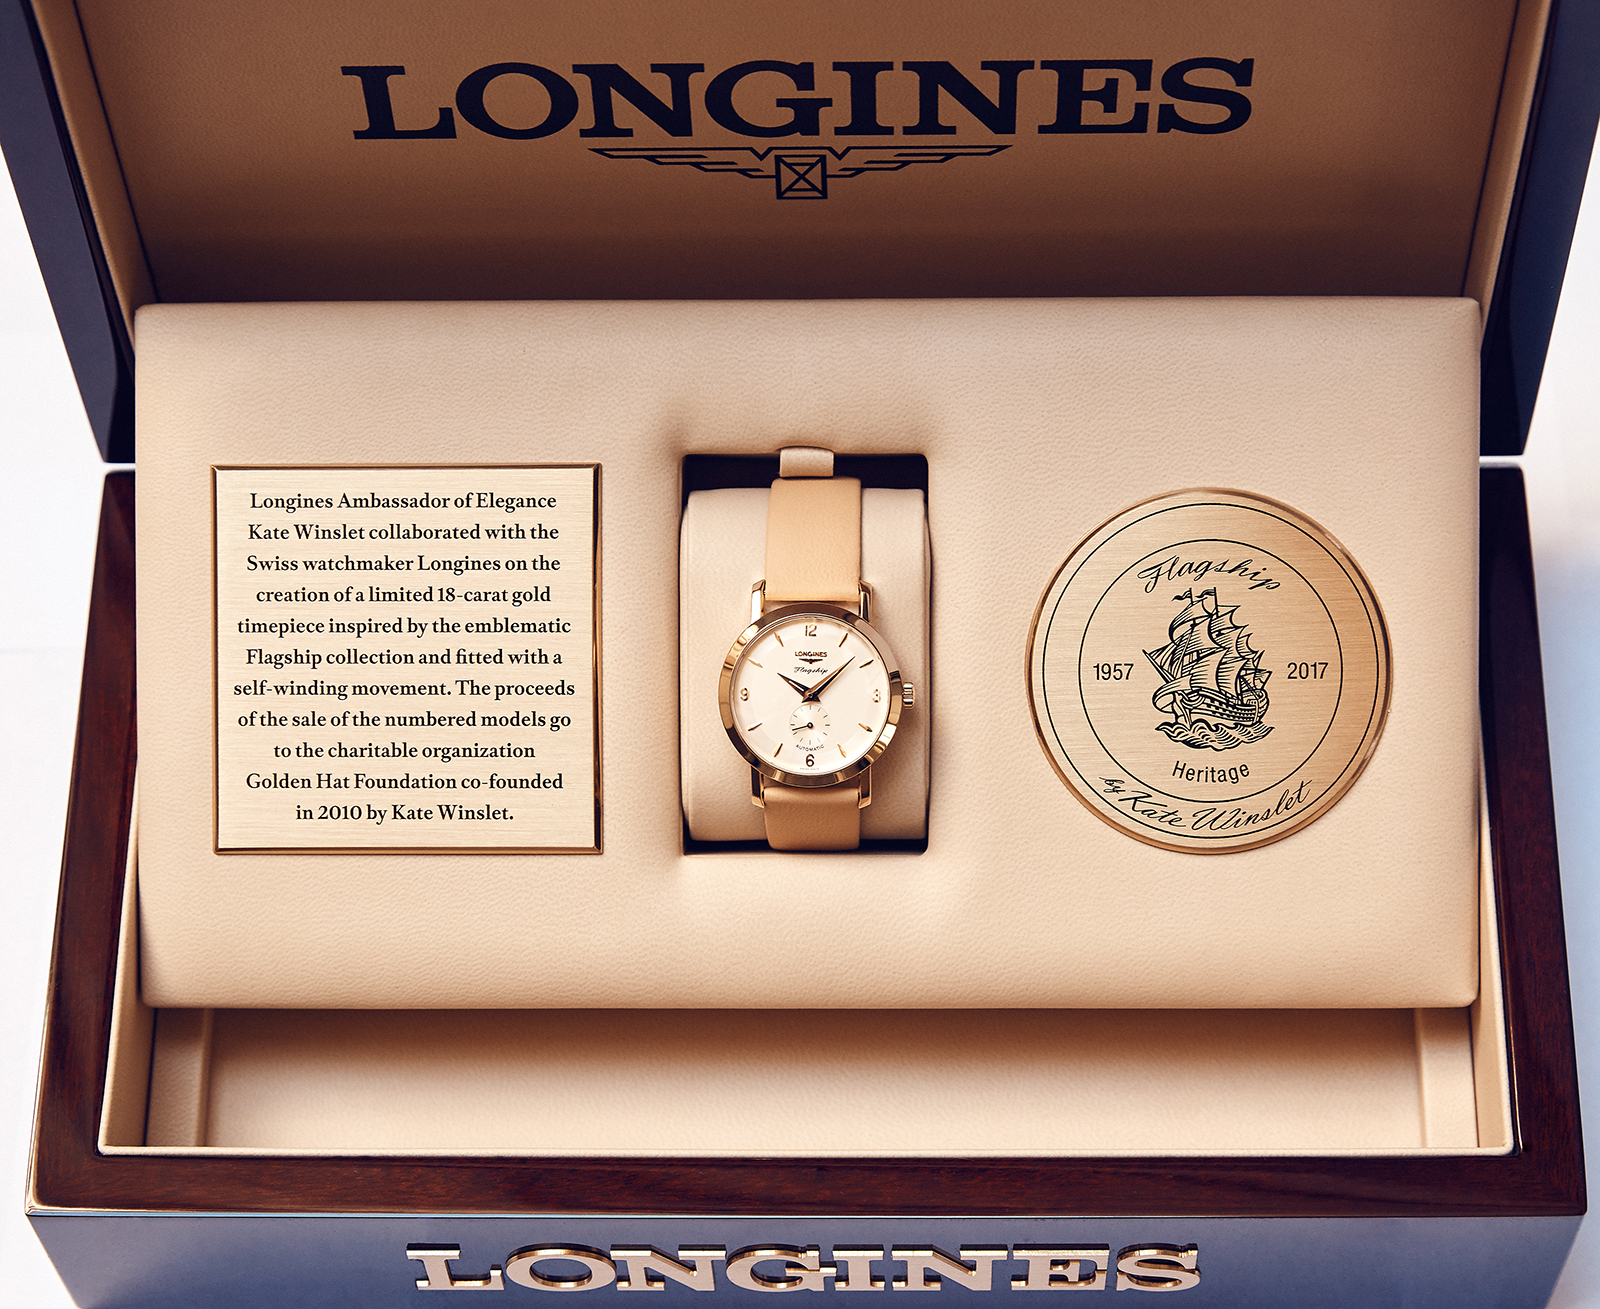 Longines Flagship Heritage by Kate Winslet